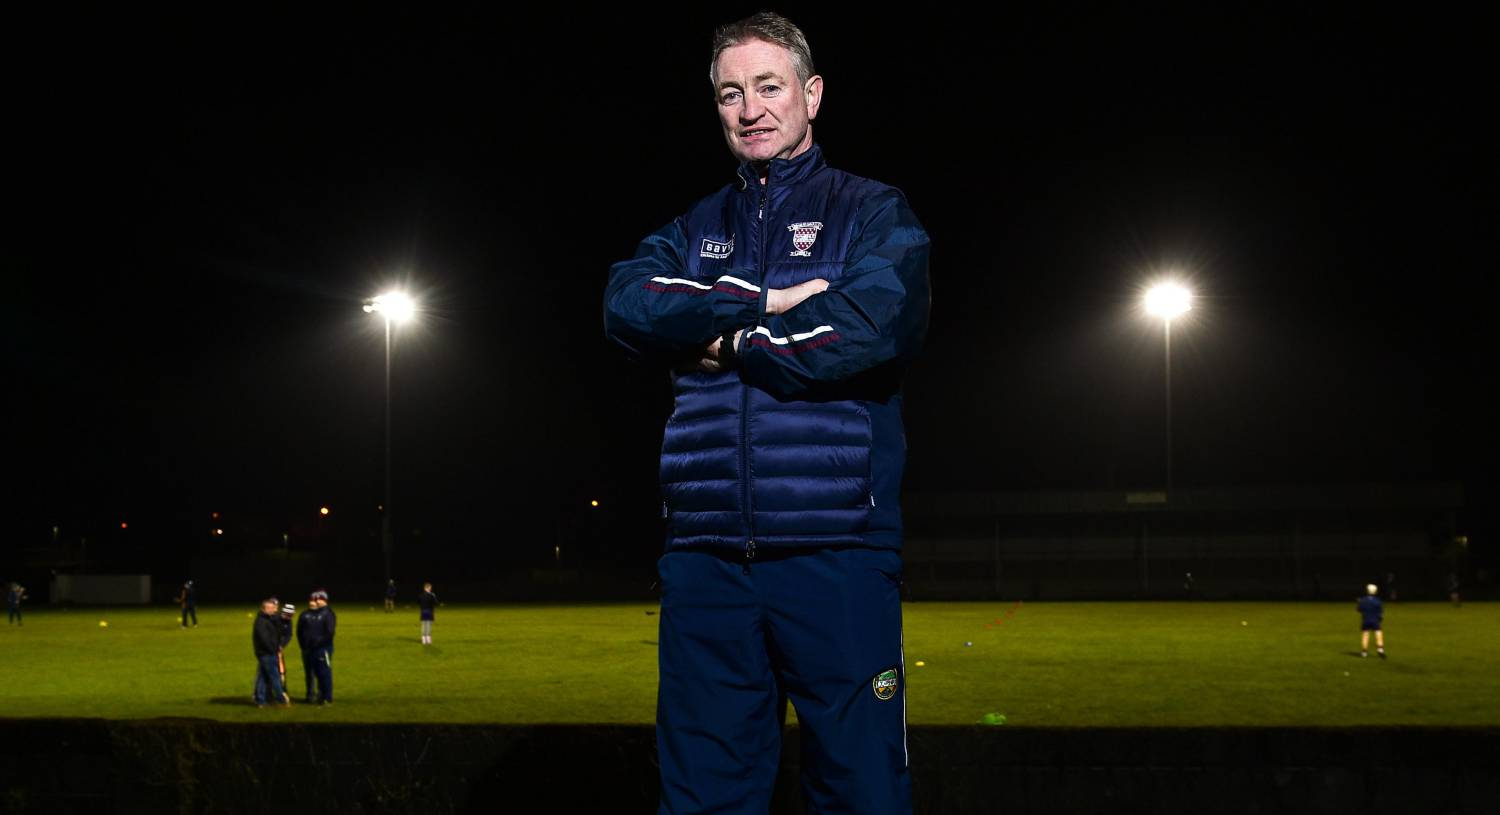 Johnny Kelly: 'If social distancing is in place, it doesn't matter if you are club or county'